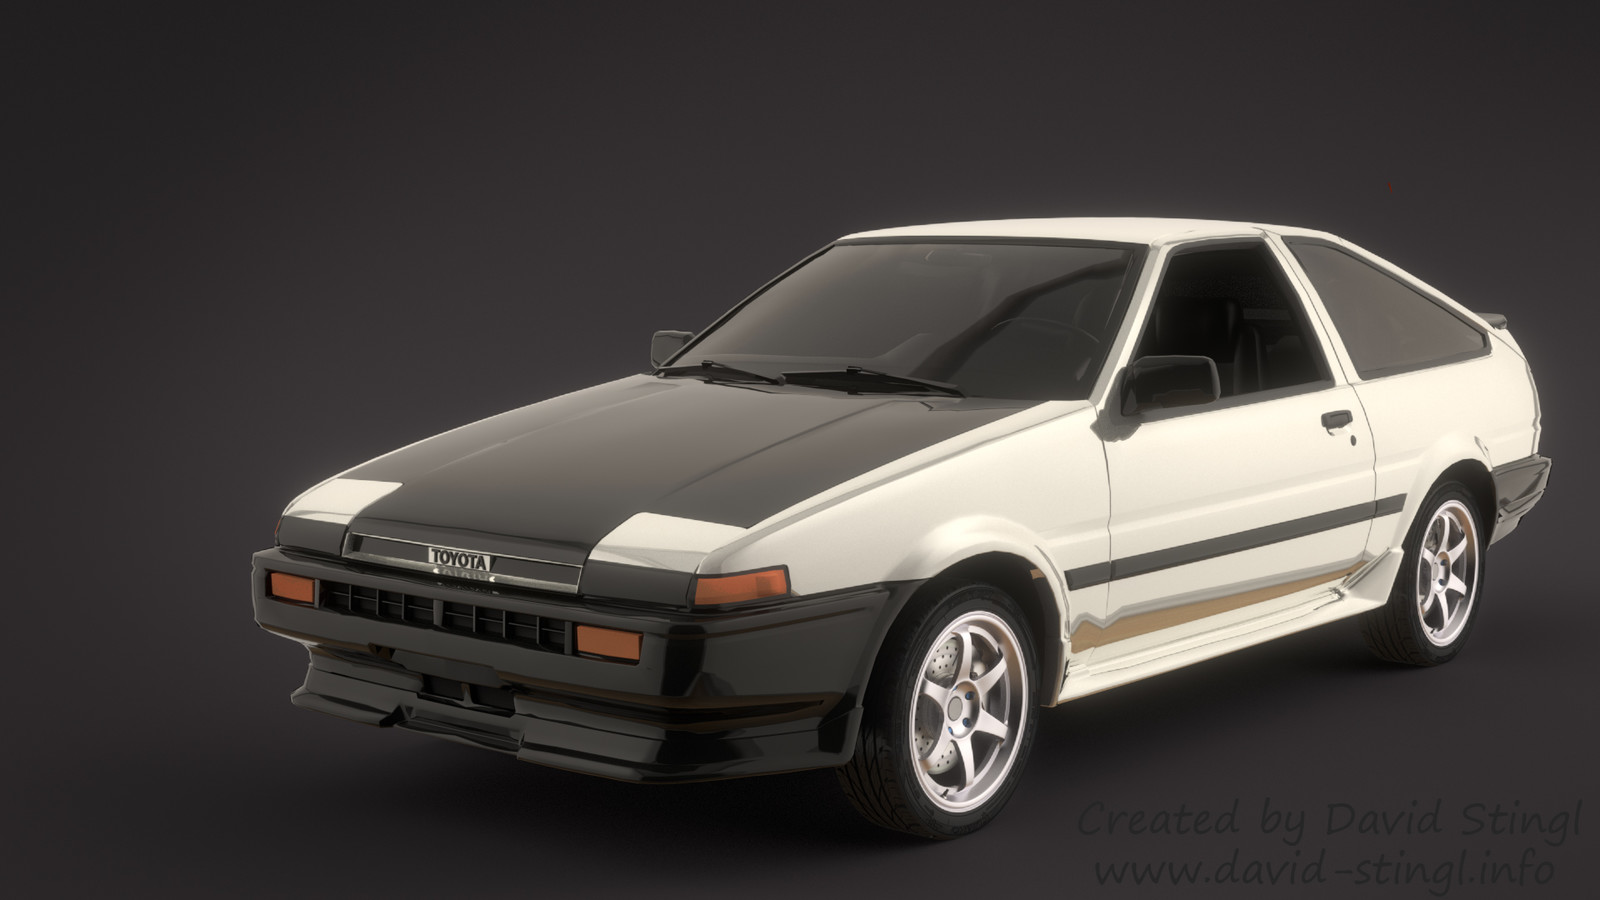 Toyota Trueno ae86 (Eight-Six)